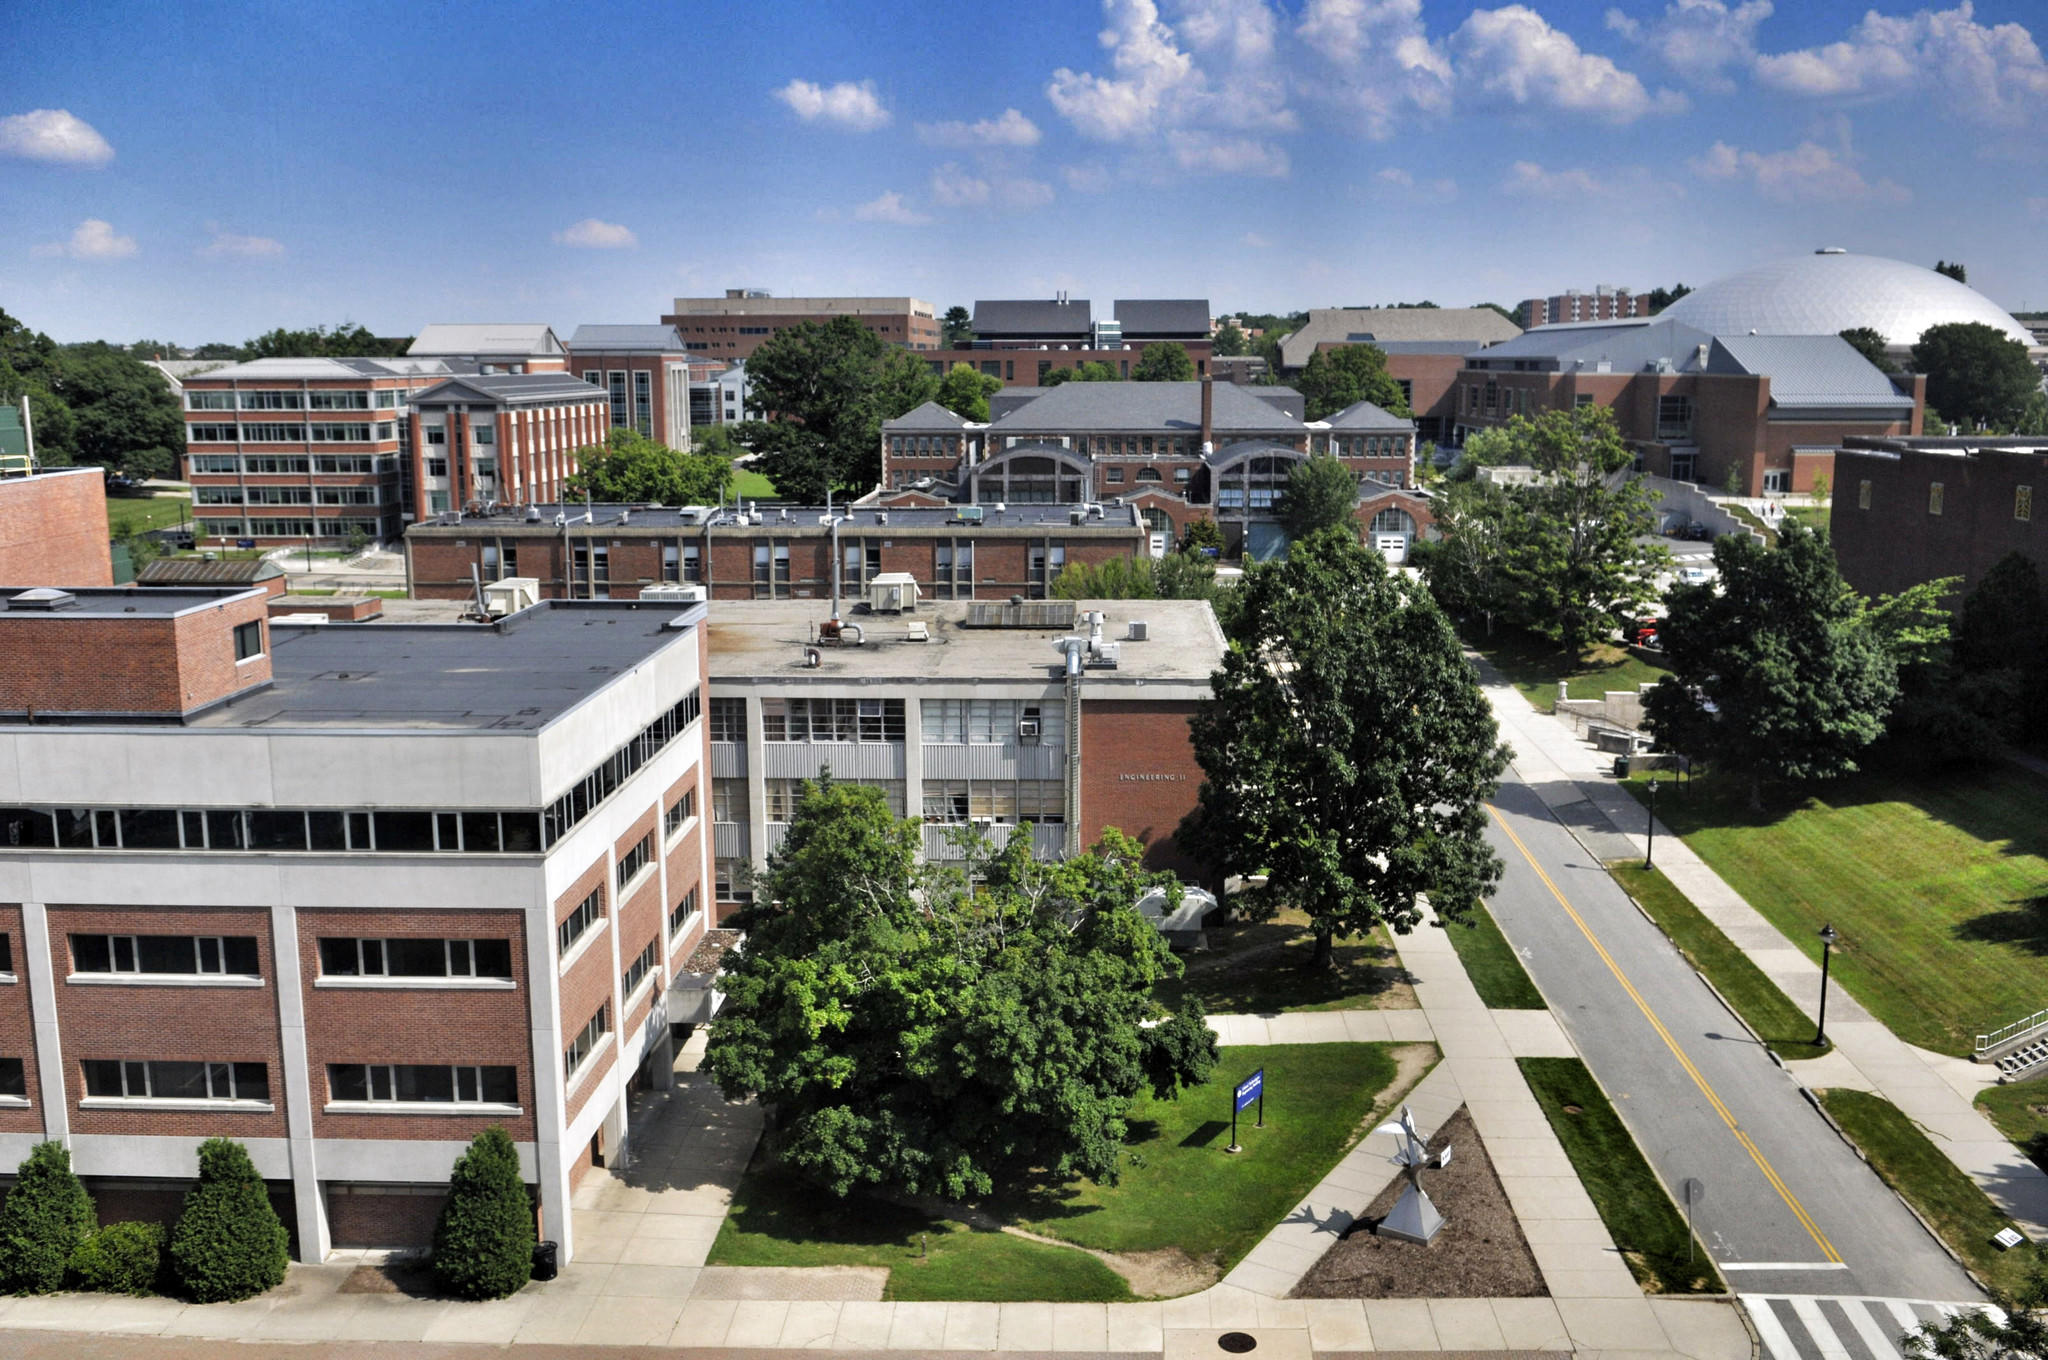 View of the UConn campus.